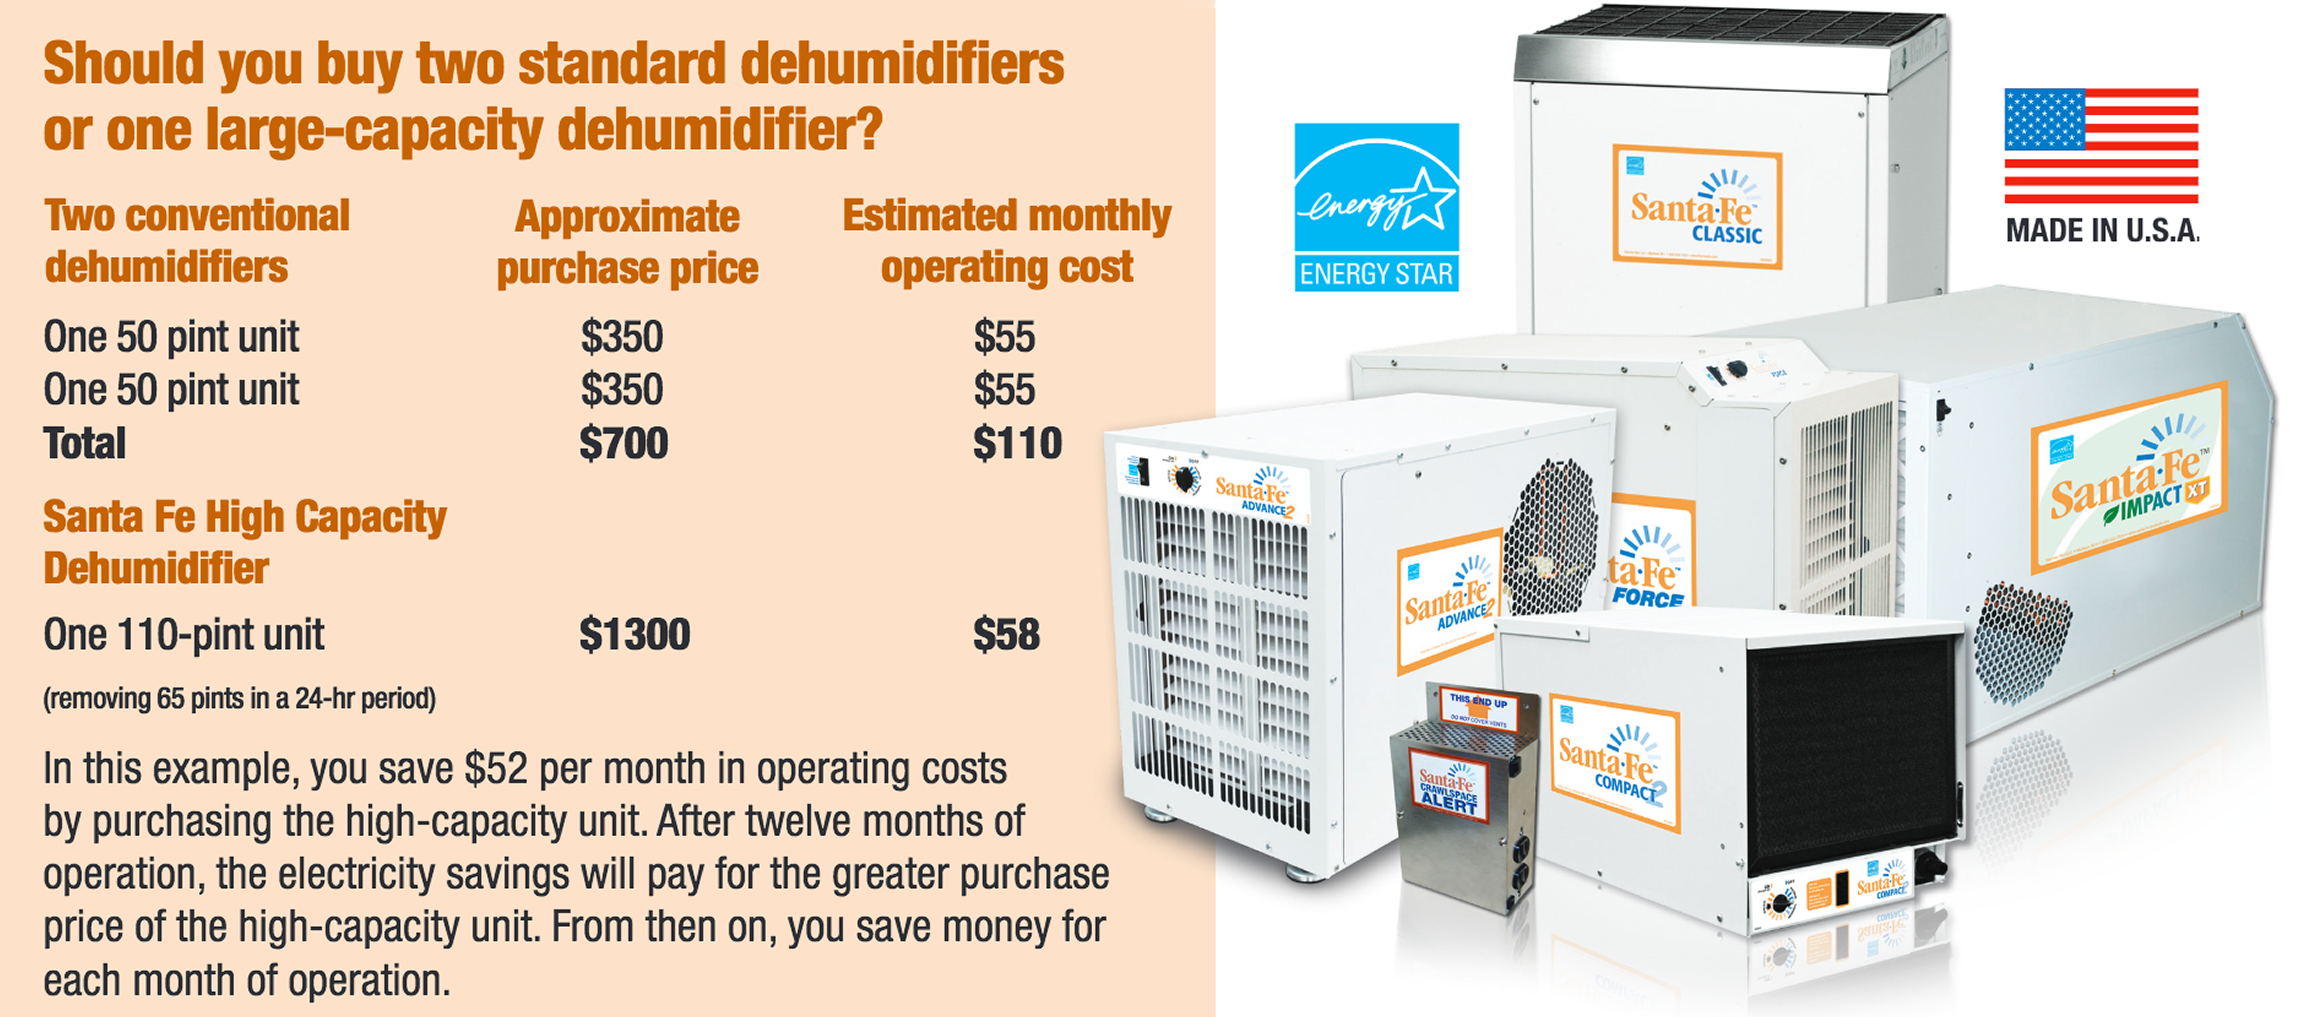 Santa Fe dehumidifiers are energy efficient